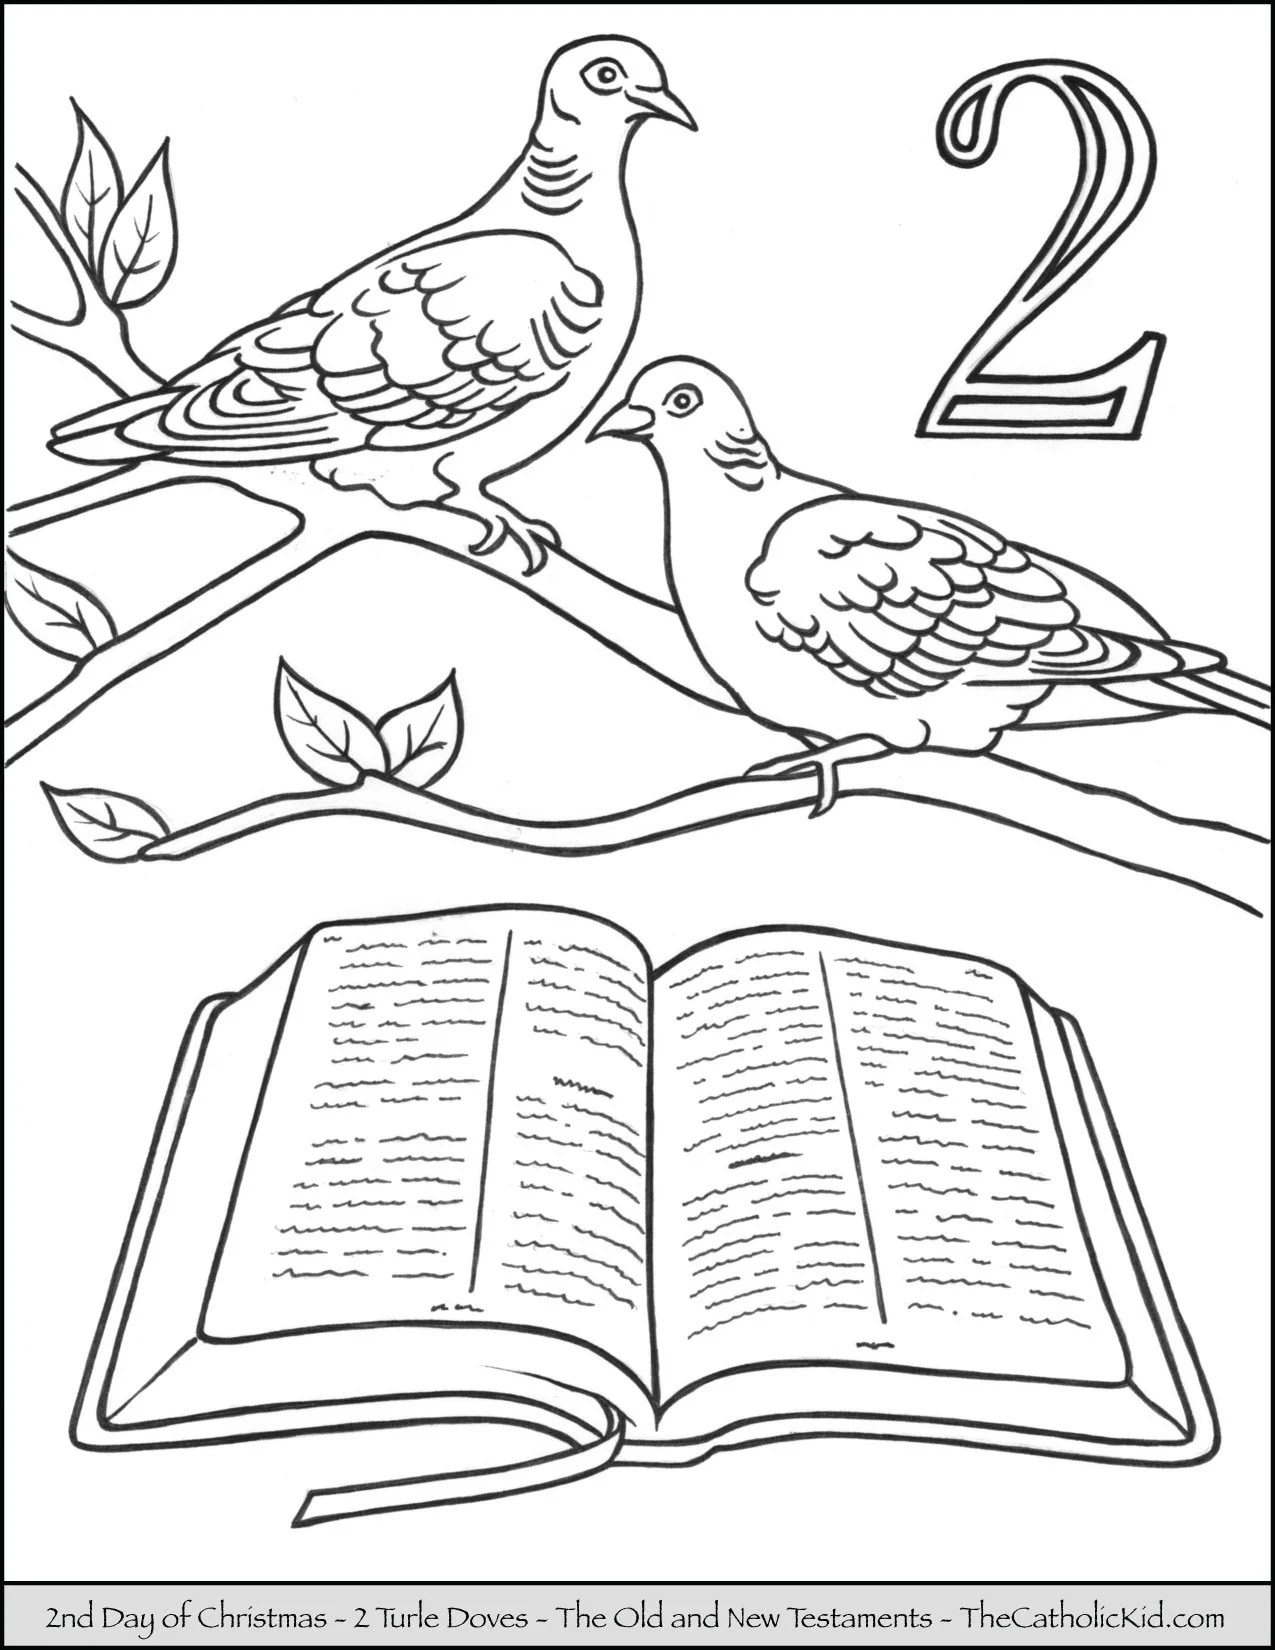 12 Days Of Christmas Coloring Pages 10 Lords A Leaping Sketch Coloring Page